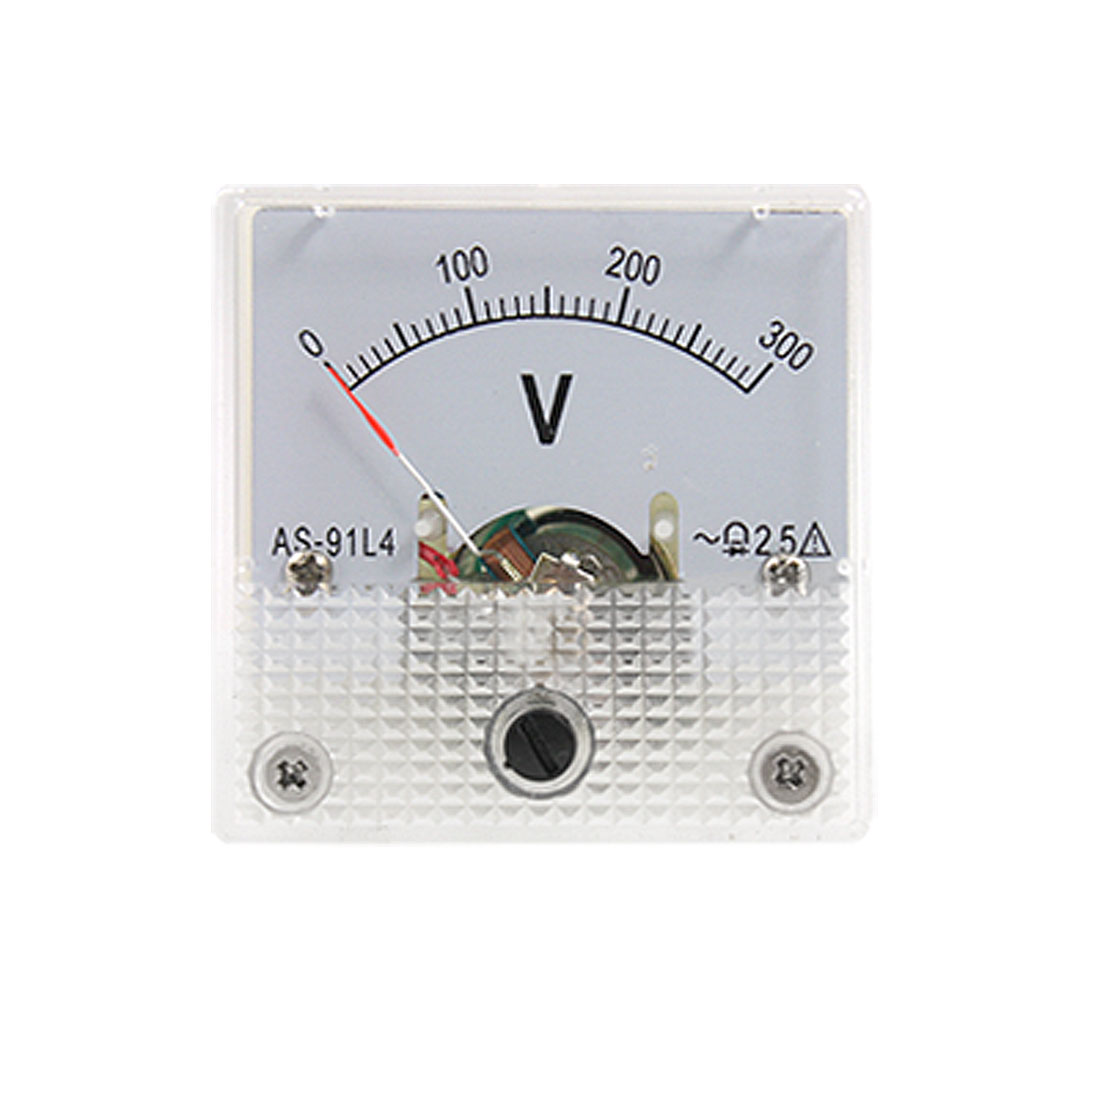 Class 2.5 Accuracy AC 0-300V Gauge Panel Voltage Meter AS-91L4